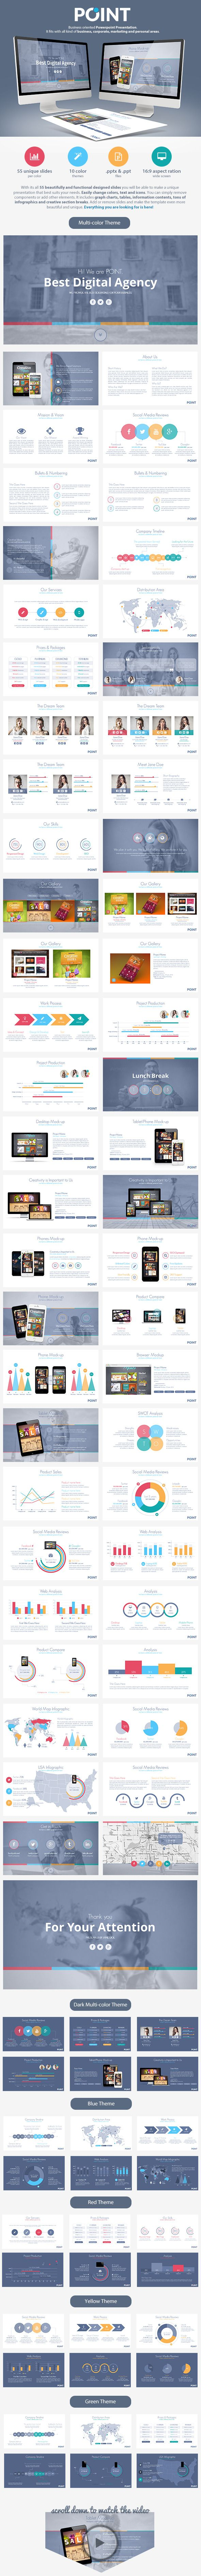 Point Powerpoint Presentation (Powerpoint Templates)